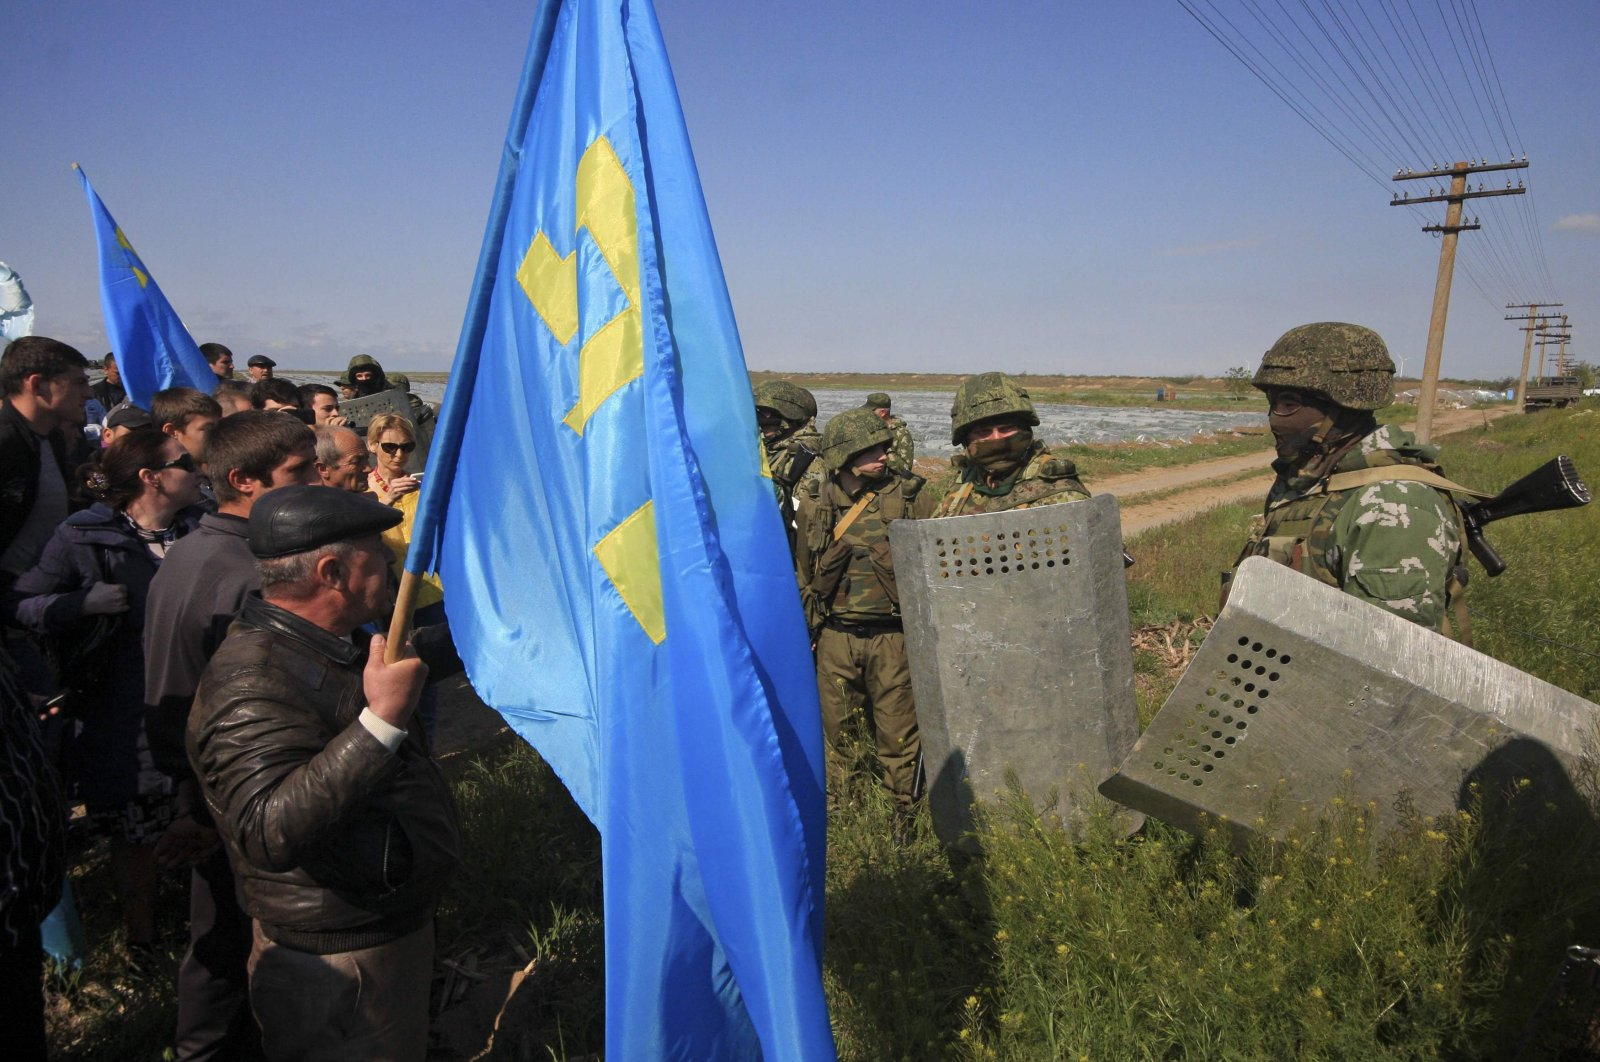 Russian servicemen attempt to block the way for Crimean Tatars to cross a checkpoint connecting Crimea and the Kherson region to meet with former chairman of the Mejlis of the Crimean Tatars, Mustafa Dzhemilev, near the city of Armyansk, Crimea, May 3, 2014. (Reuters Photo)